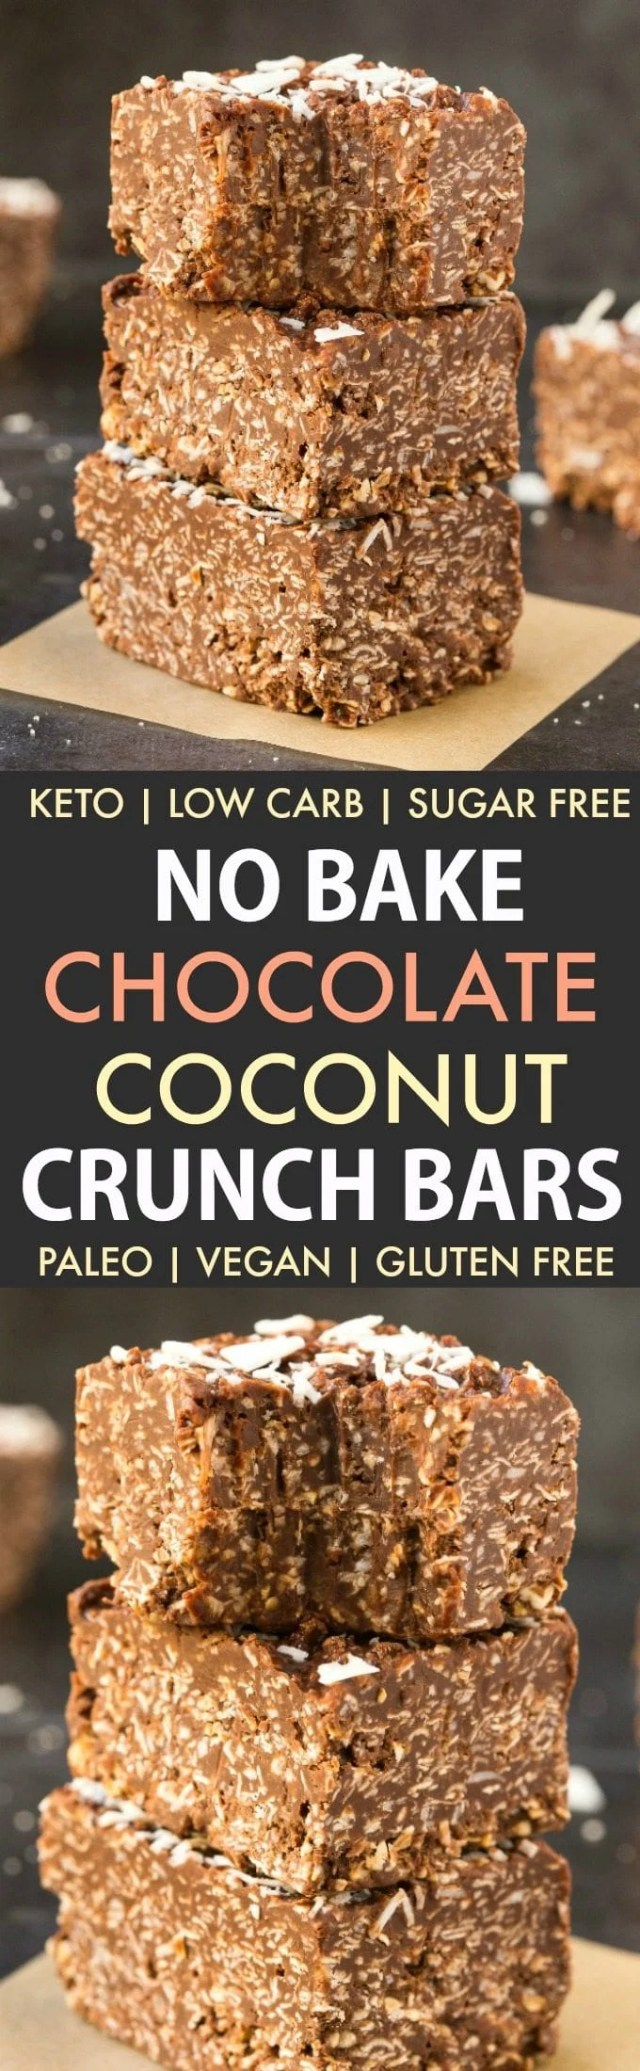 Homemade No Bake Keto Chocolate Coconut Crunch Bars in a collage